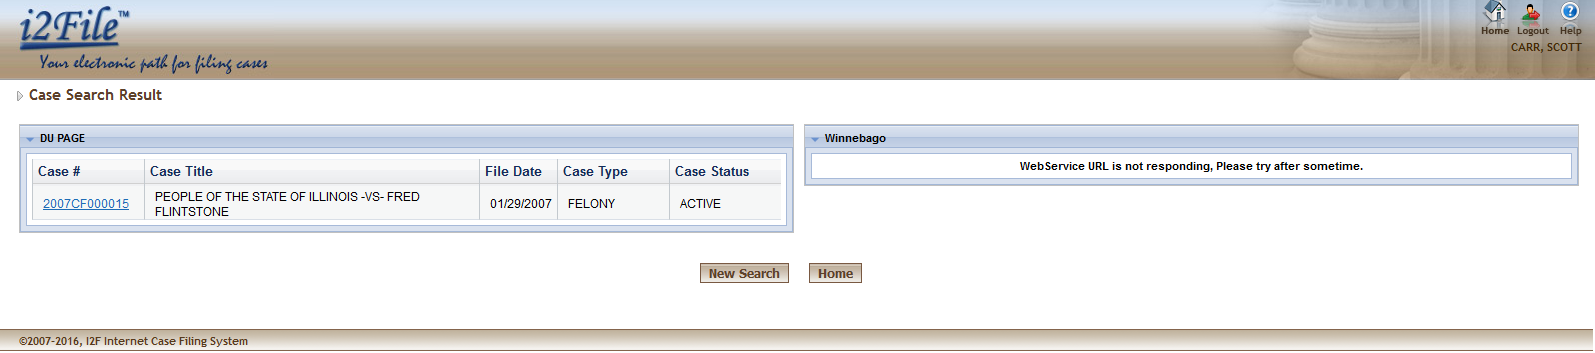 Case number search User will have to enter a valid case number and I2File will search details of that case in all counties or selected counties.